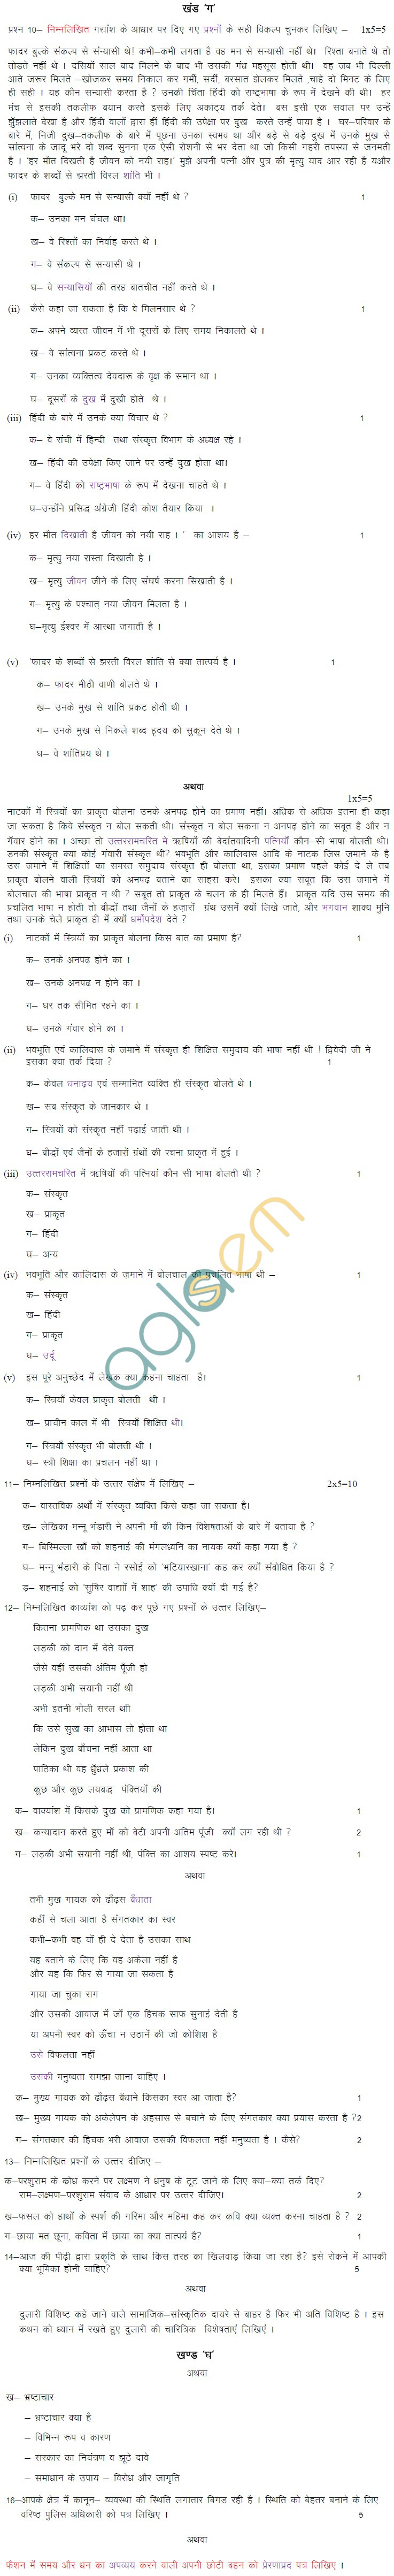 CBSE Board Exam 2013 Sample Papers (SA2) Class X - Hindi – A